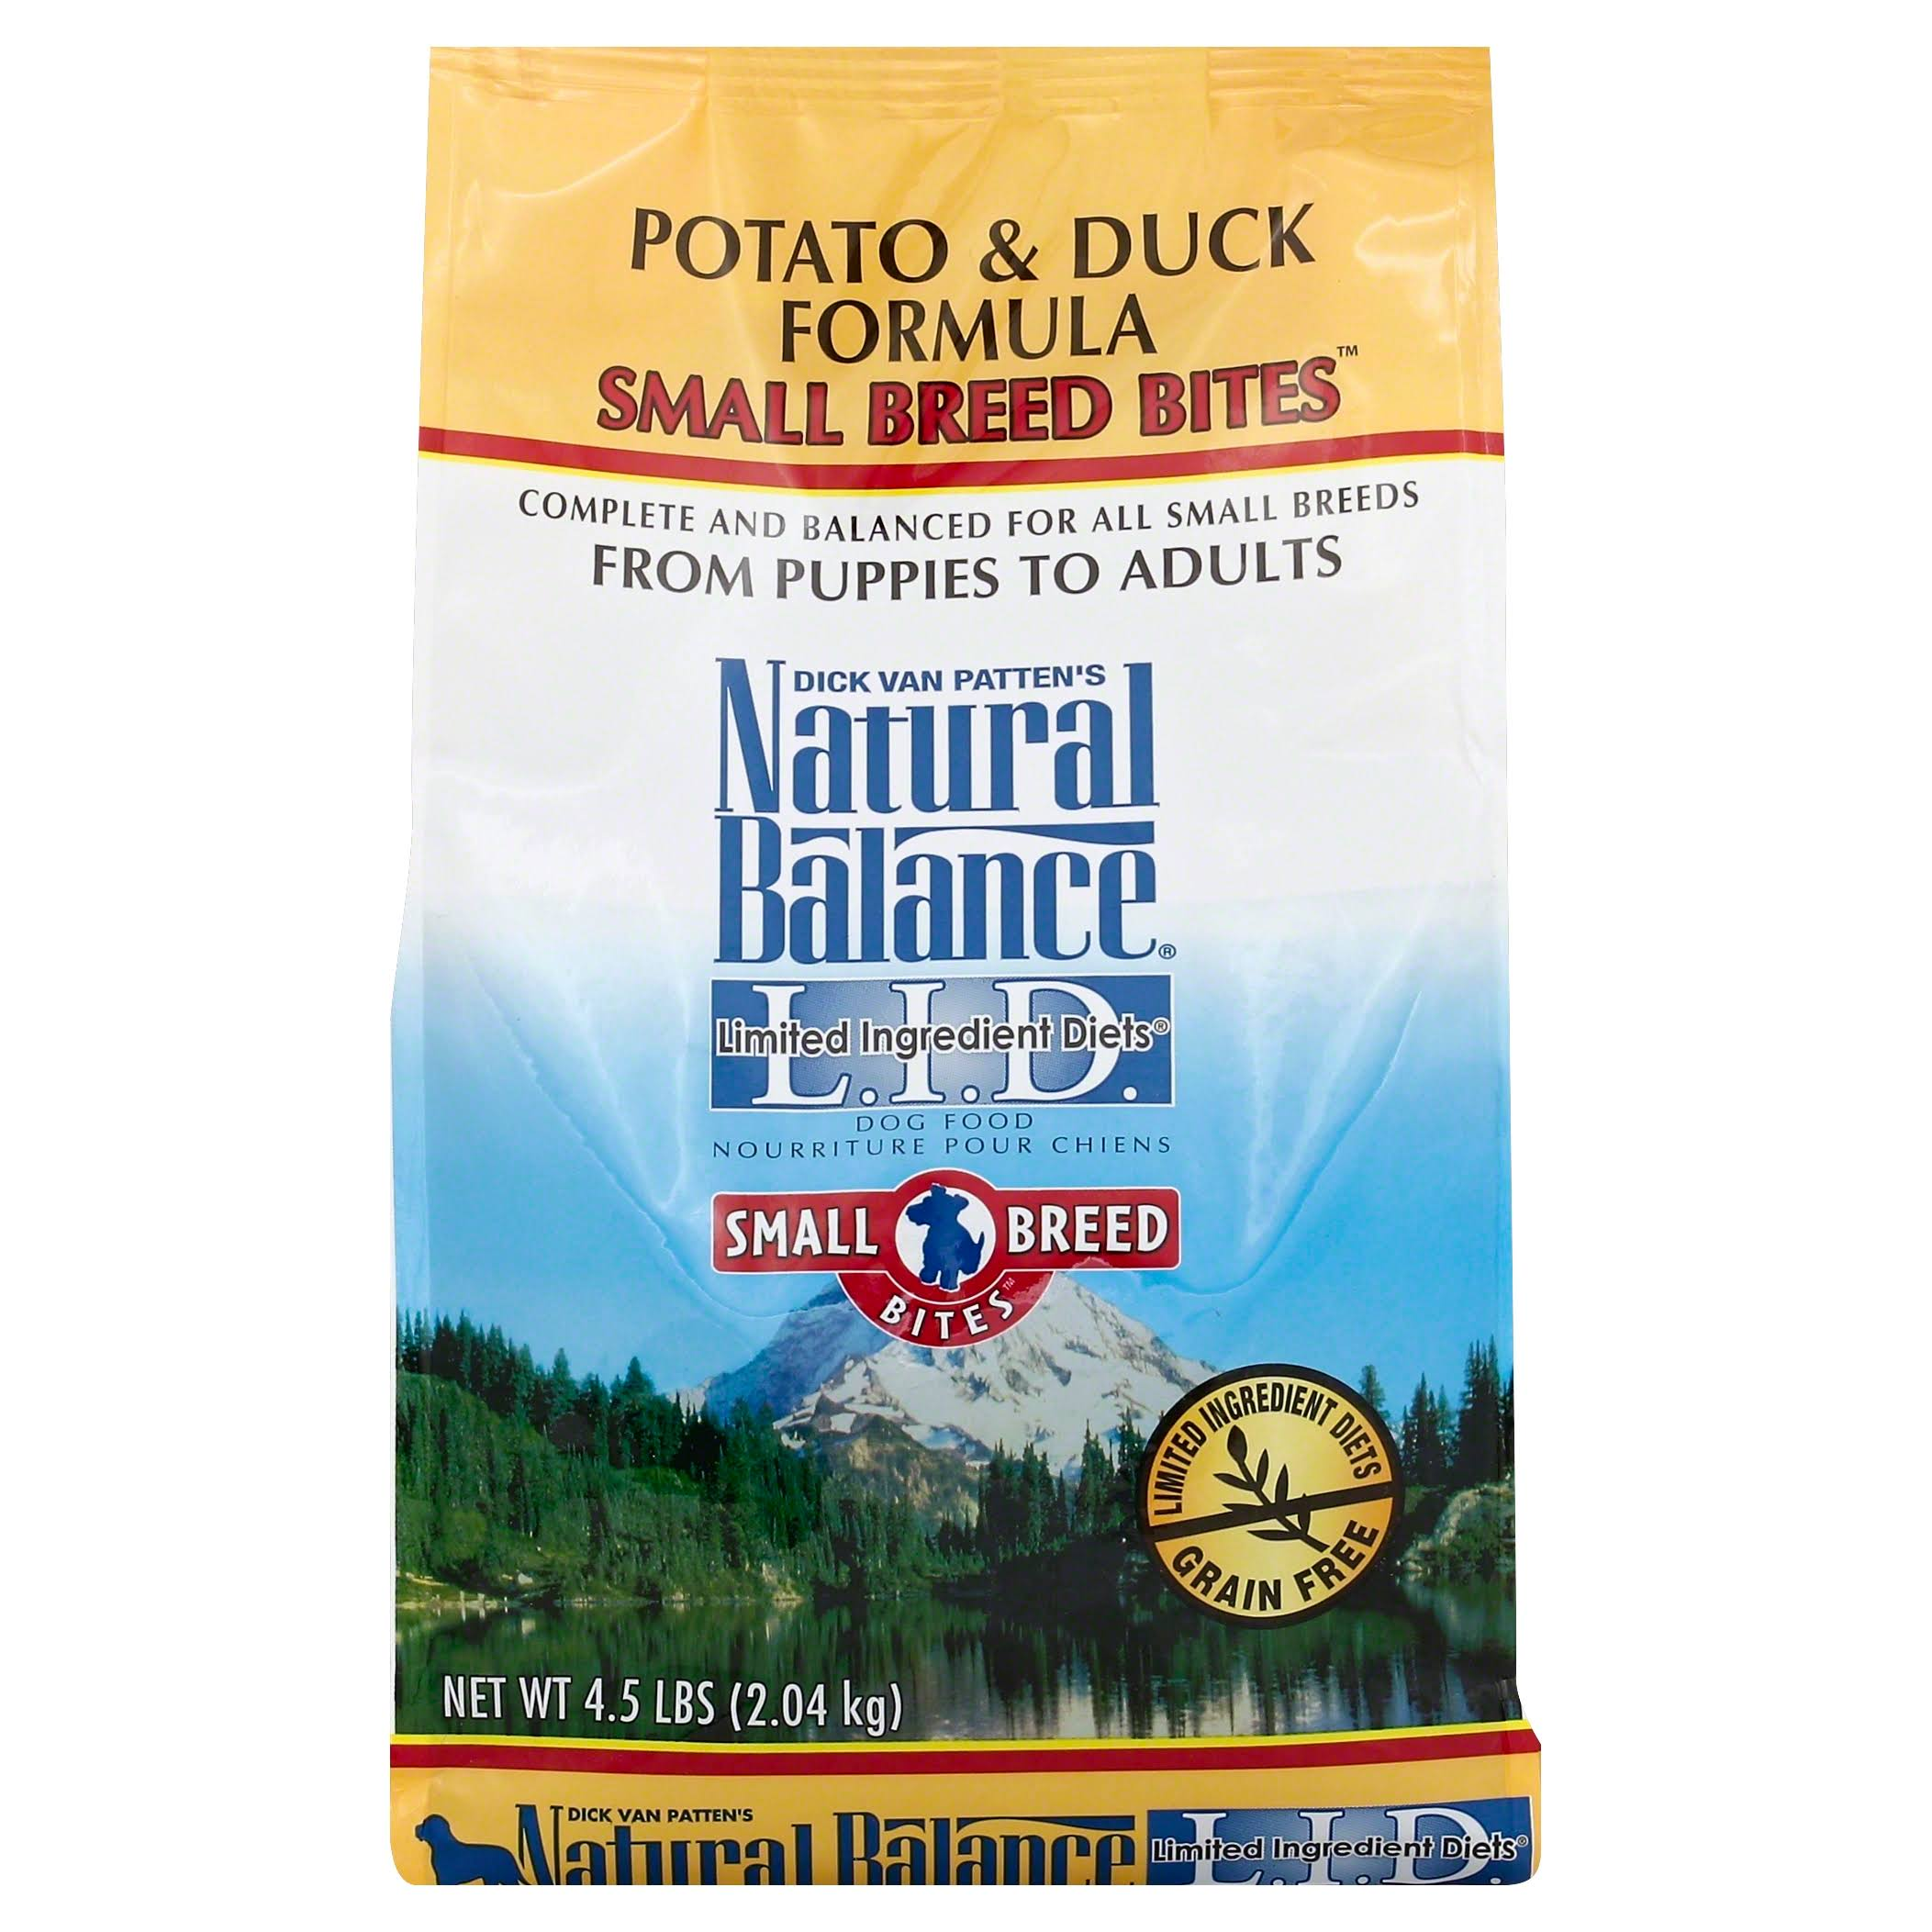 Natural Balance Small Breed Bites - Potato & Duck